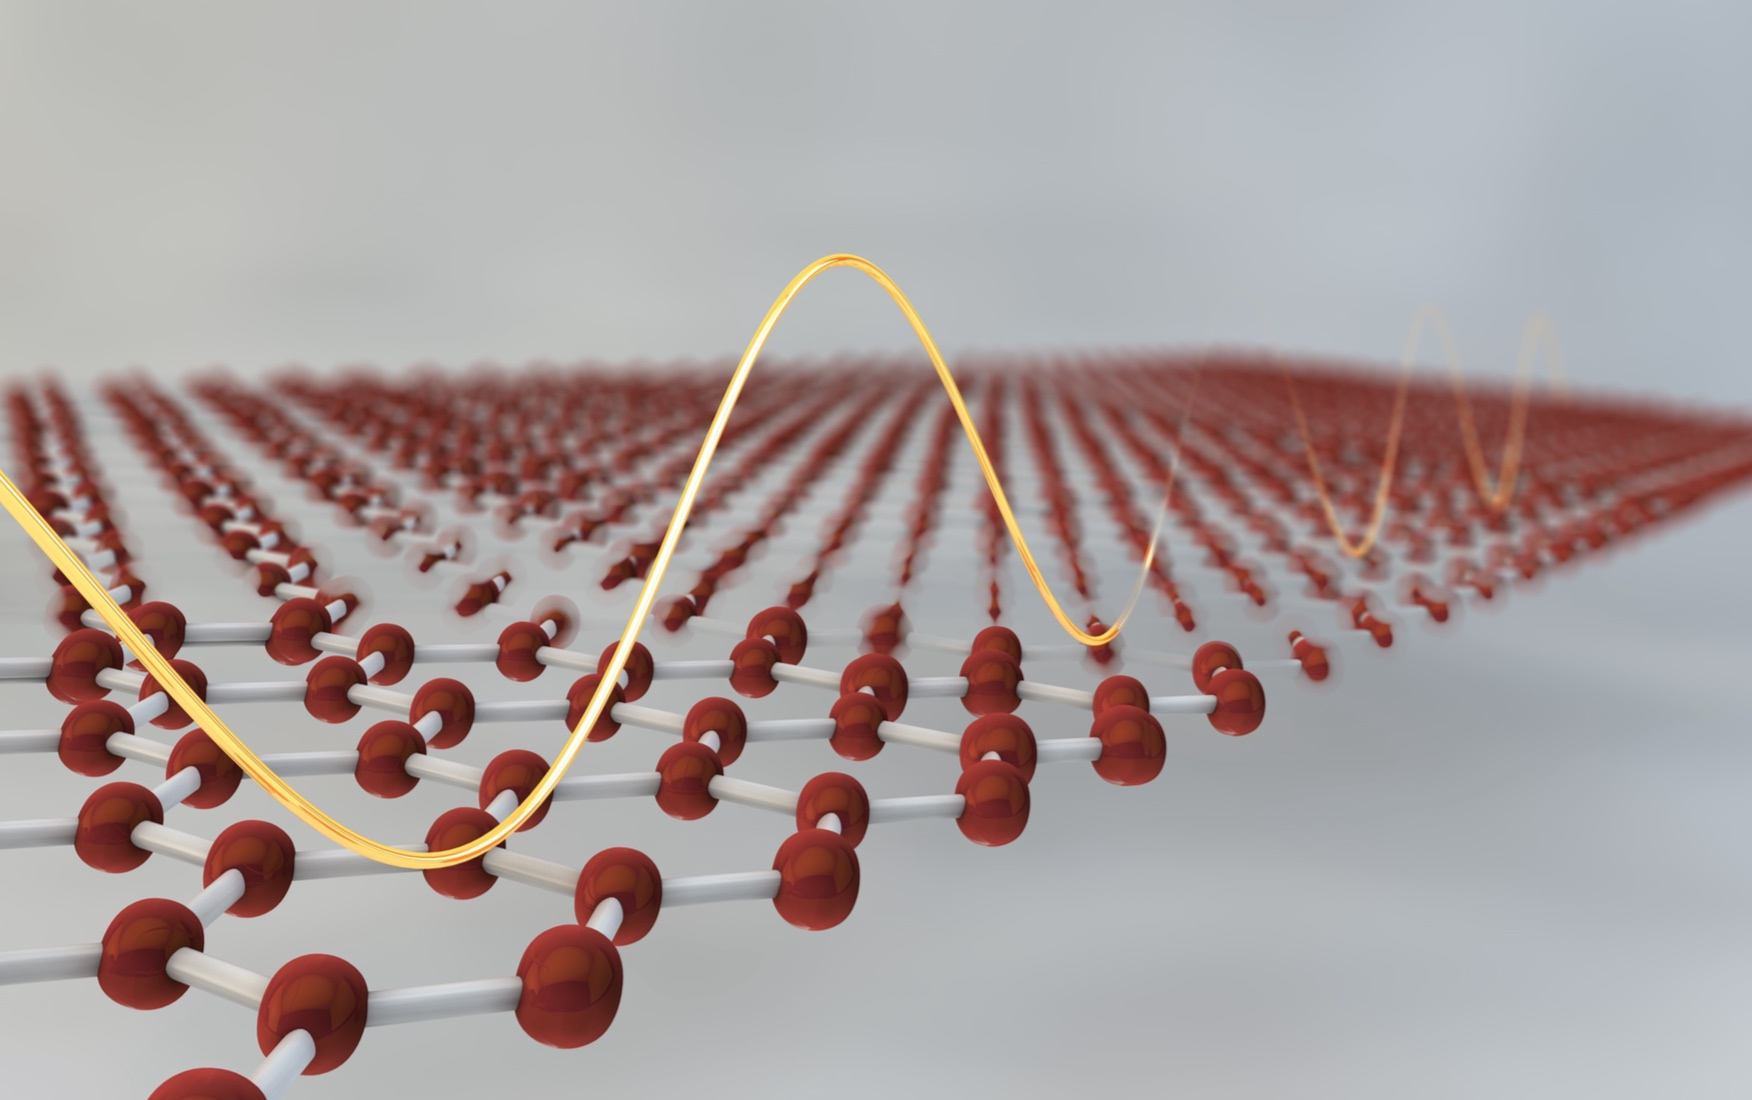 Graphene-based absorbers enable many uses for ultrafast lasers